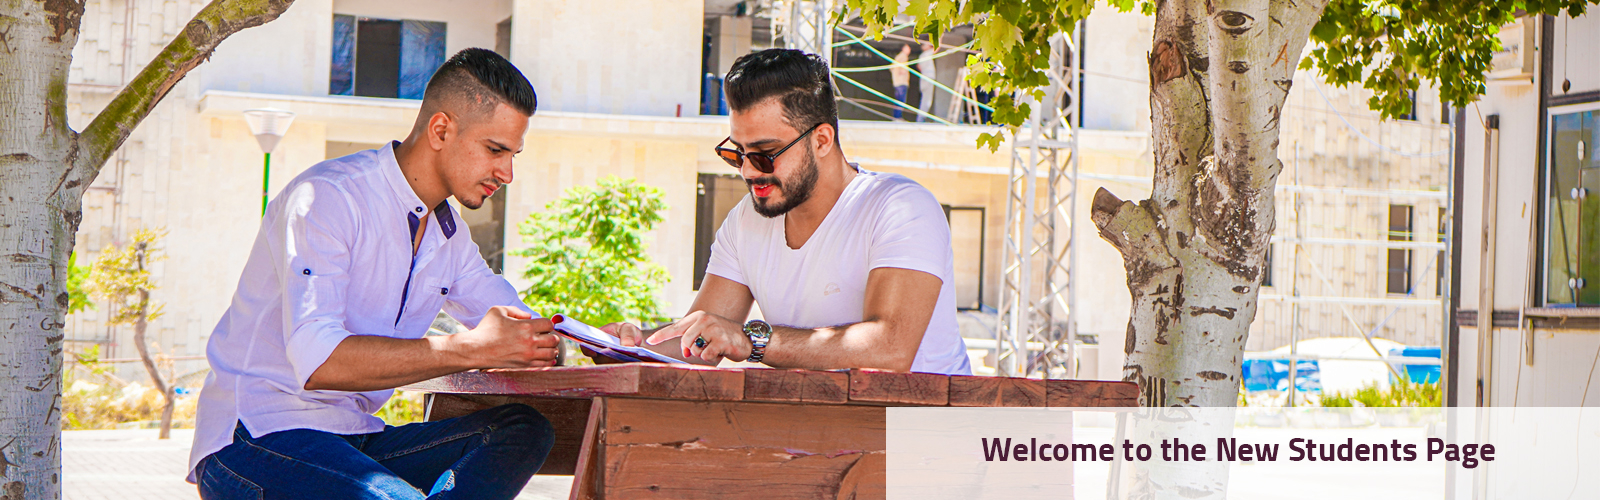 Palestine Polytechnic University (PPU) - Welcome to the New Students Page